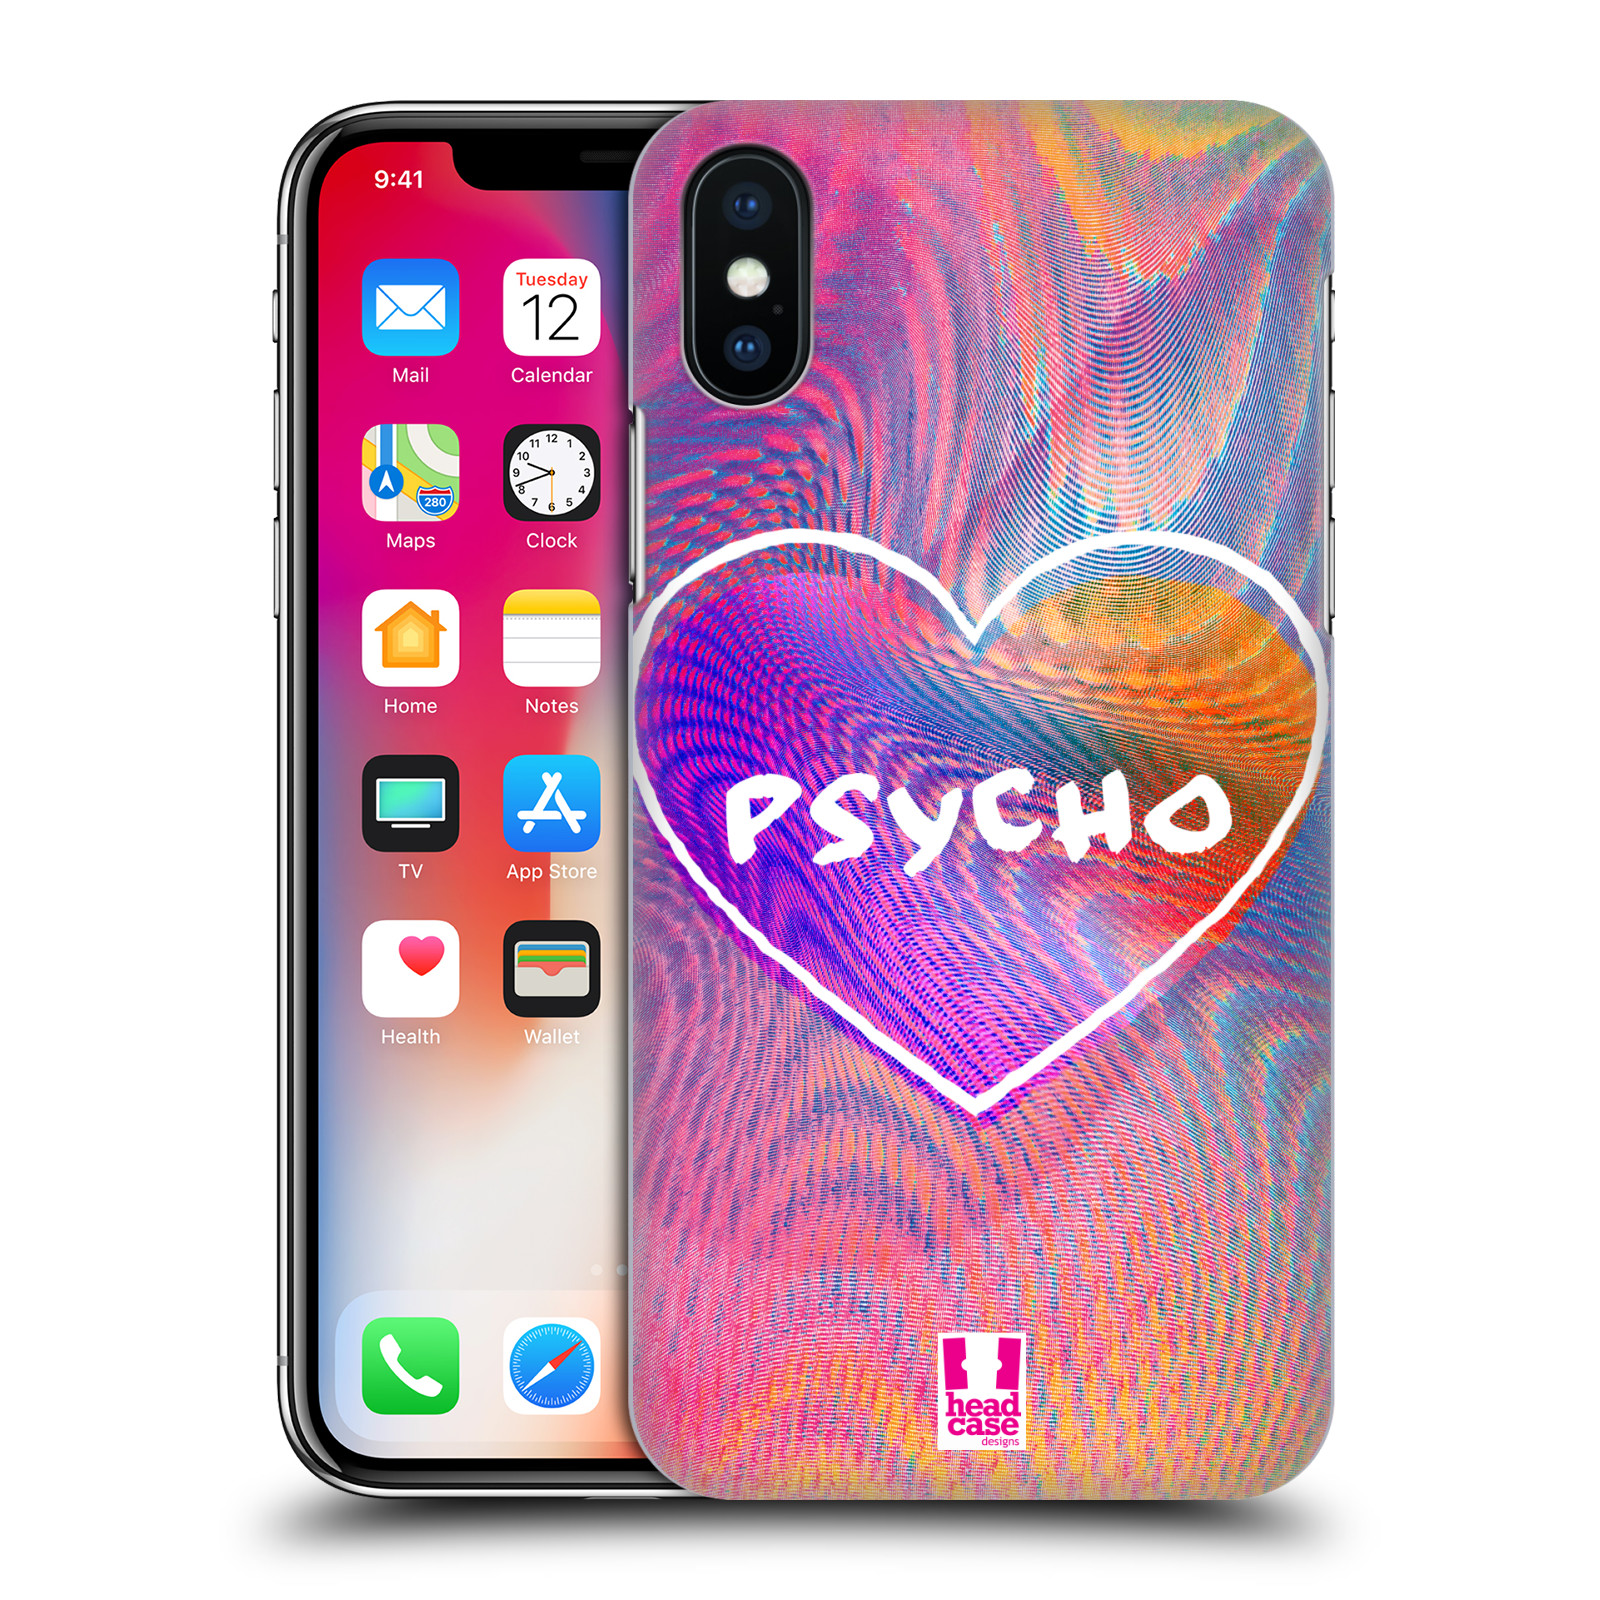 HEAD-CASE-DESIGNS-HOLOGRAPHIC-OVERLAYS-HARD-BACK-CASE-FOR-APPLE-iPHONE-X